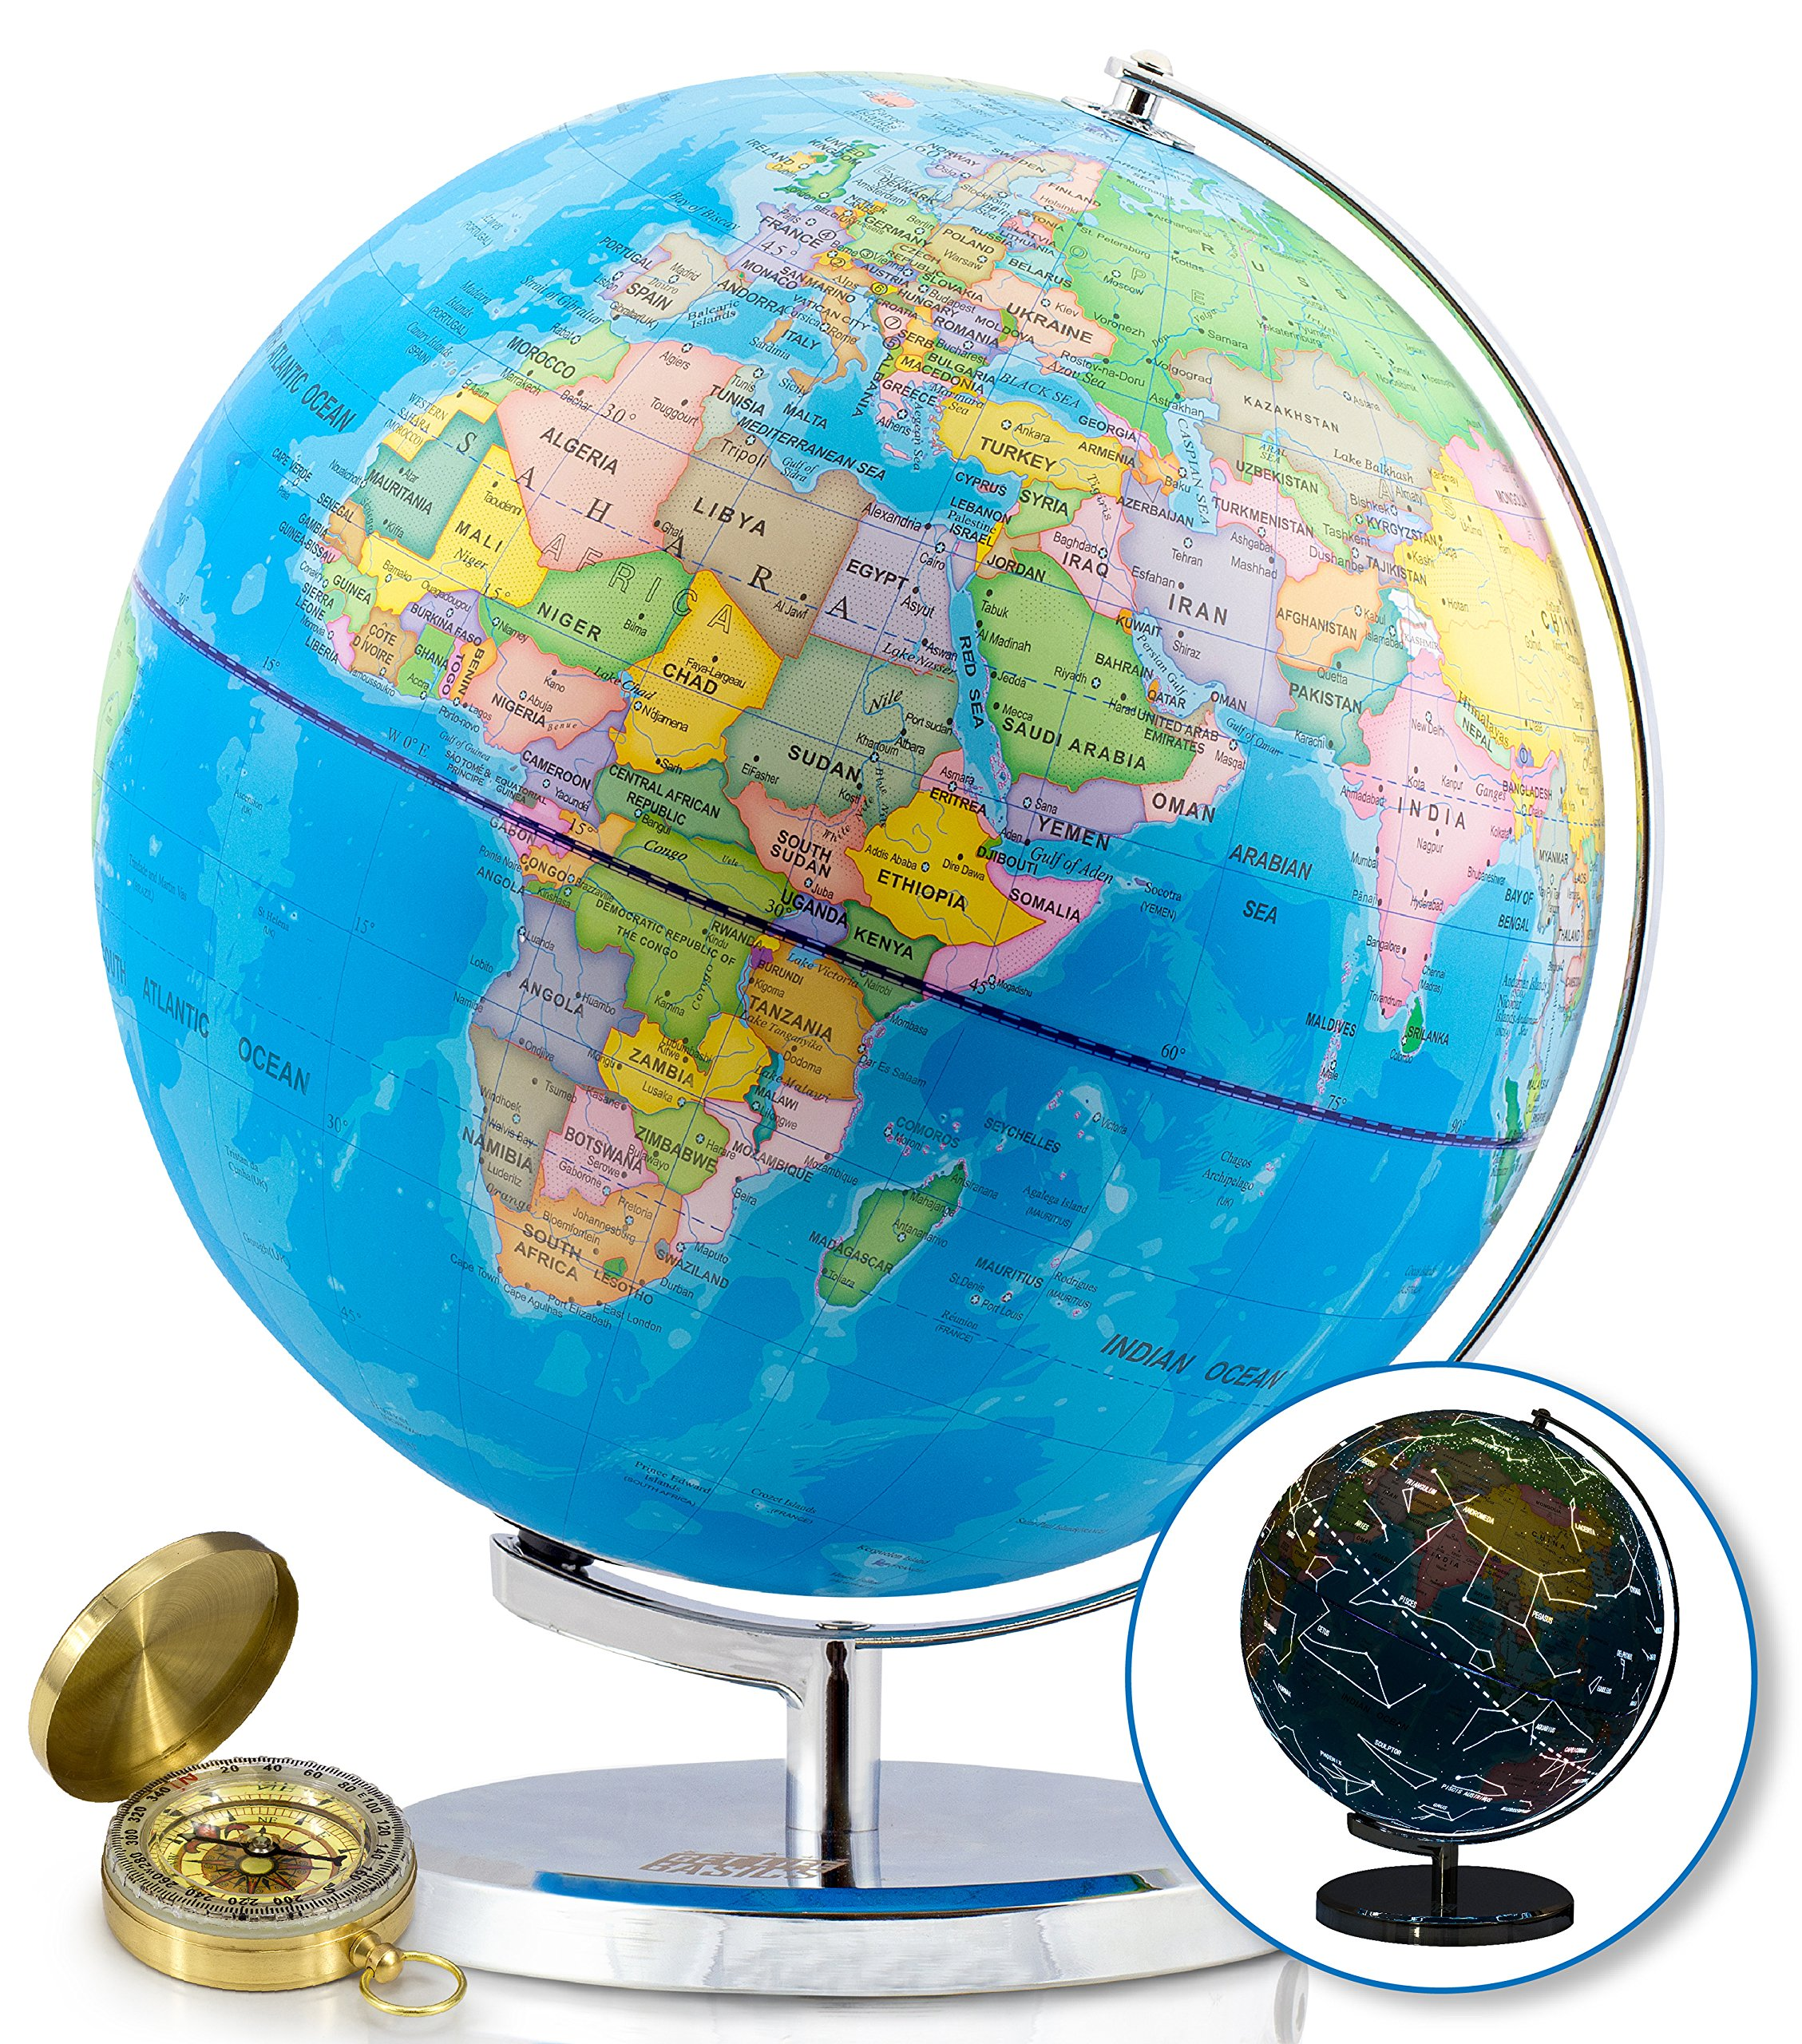 World Globe with Illuminated Constellations - 13'' Light Up Globe For Kids & Adults - Interactive Earth Globe Makes Great Educational Toys, Office Supplies, Teacher Desk Décor, More by Get Life Basics